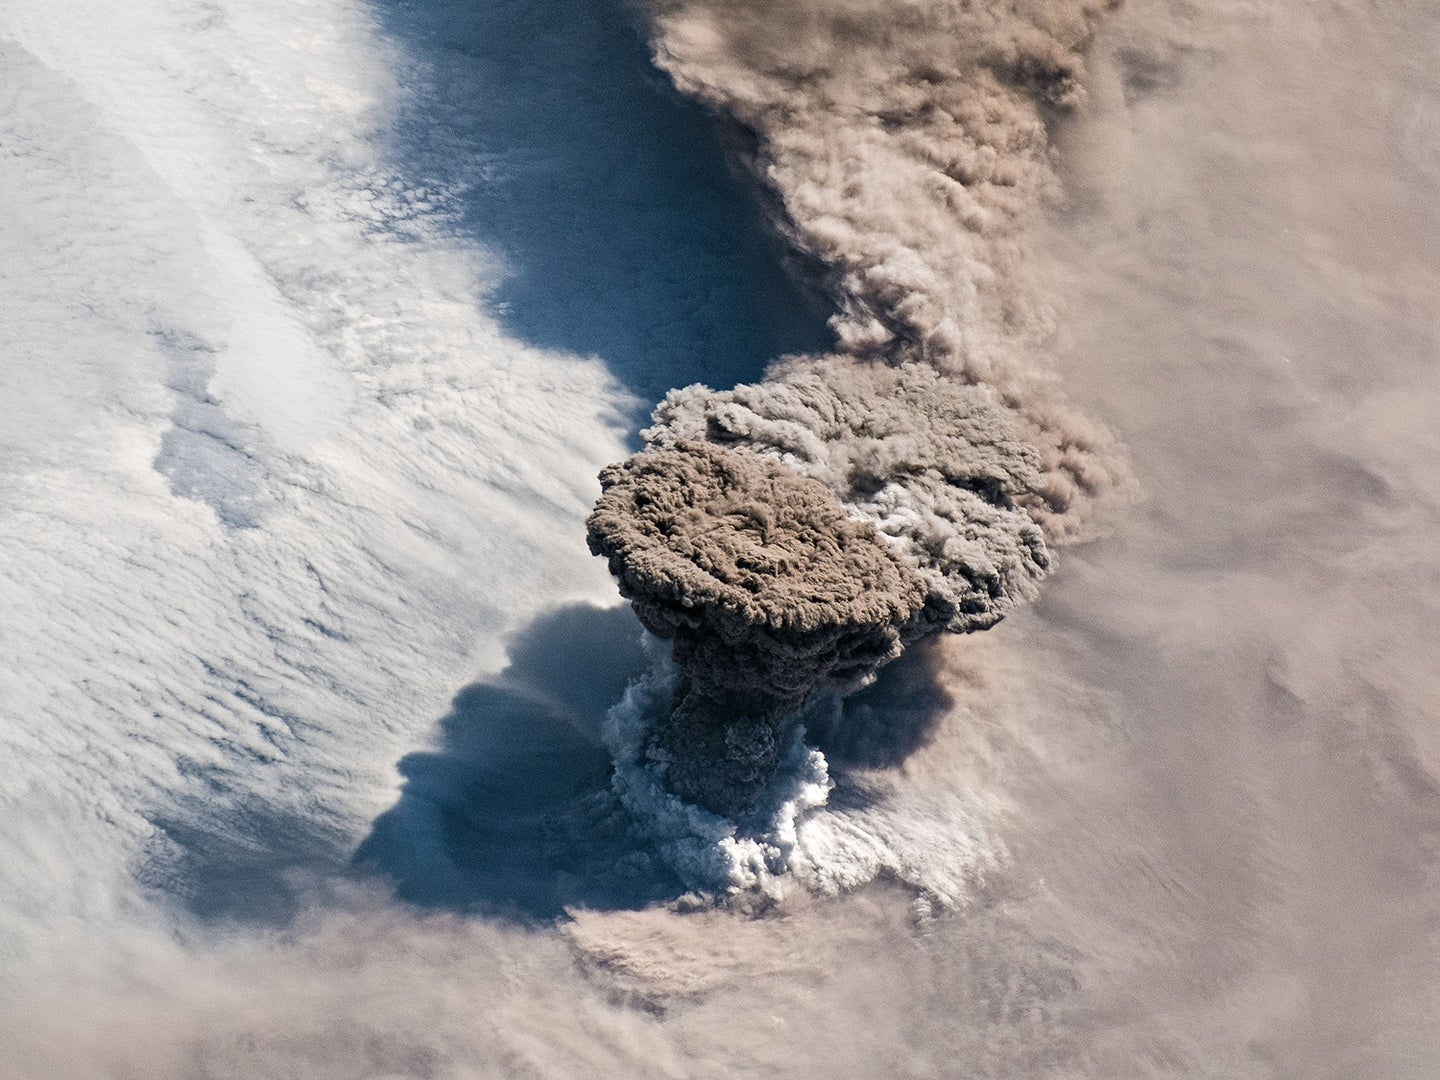 This is what it looks like to photograph a volcanic eruption from space